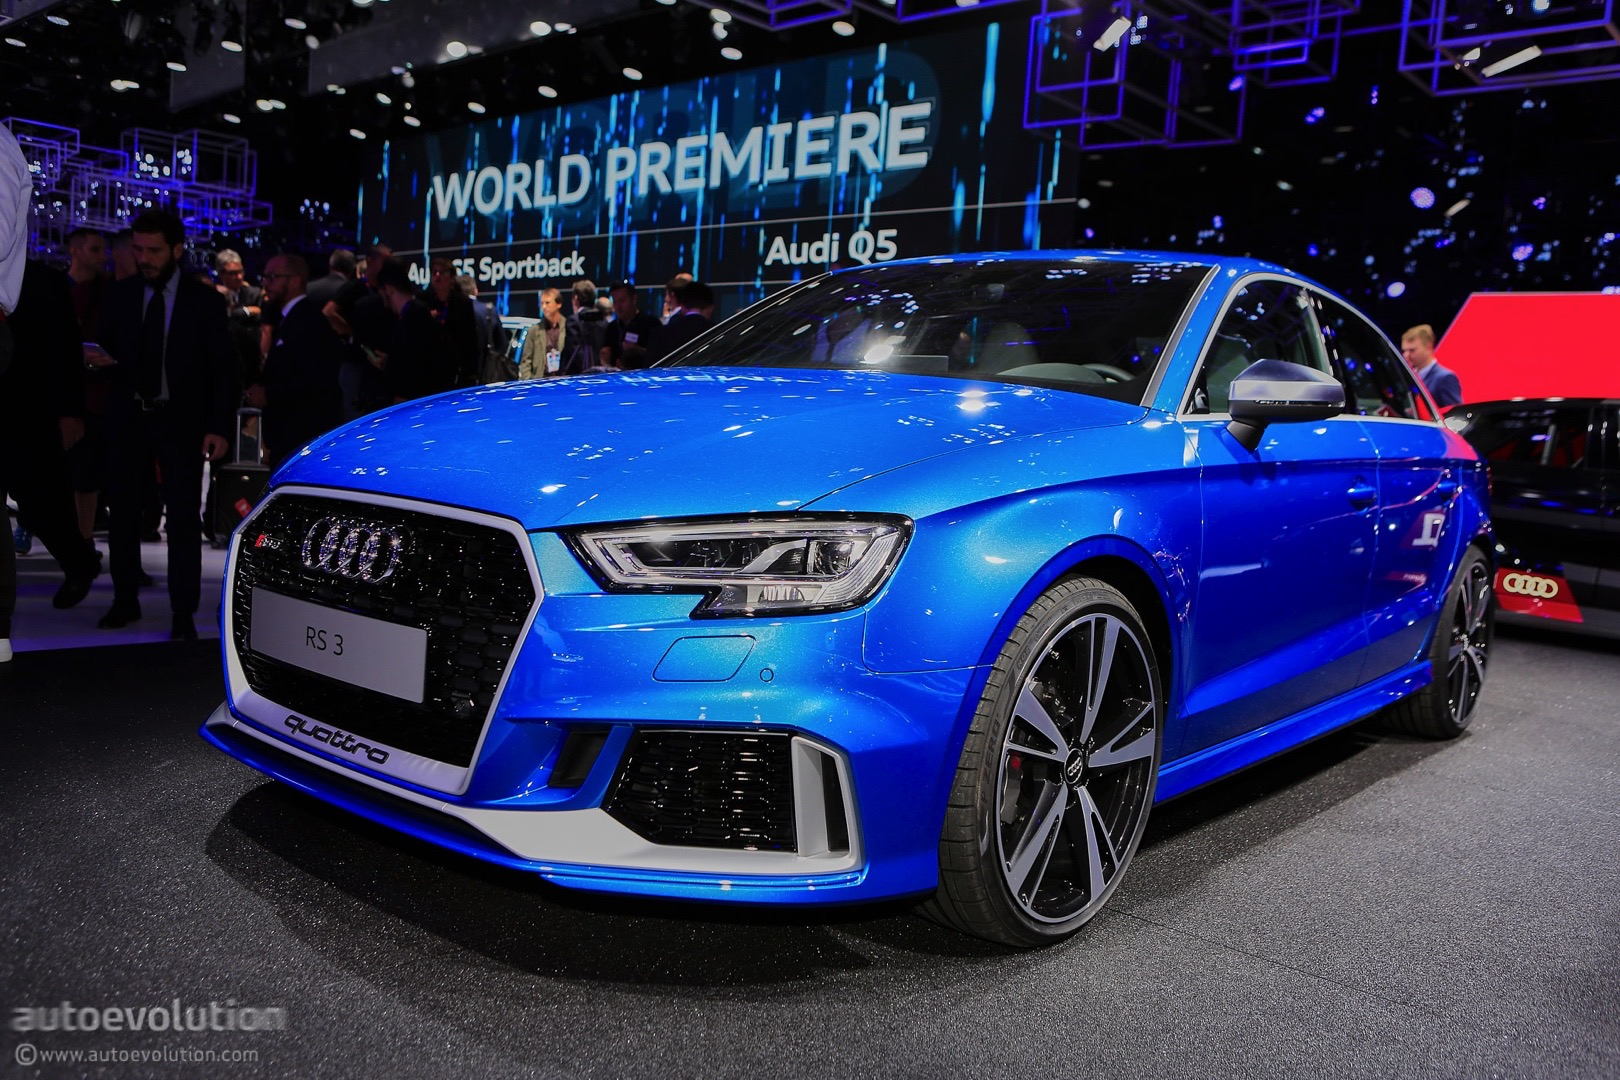 2018 Audi Rs3 Sedan Price Leaked In Canada Should Be Around